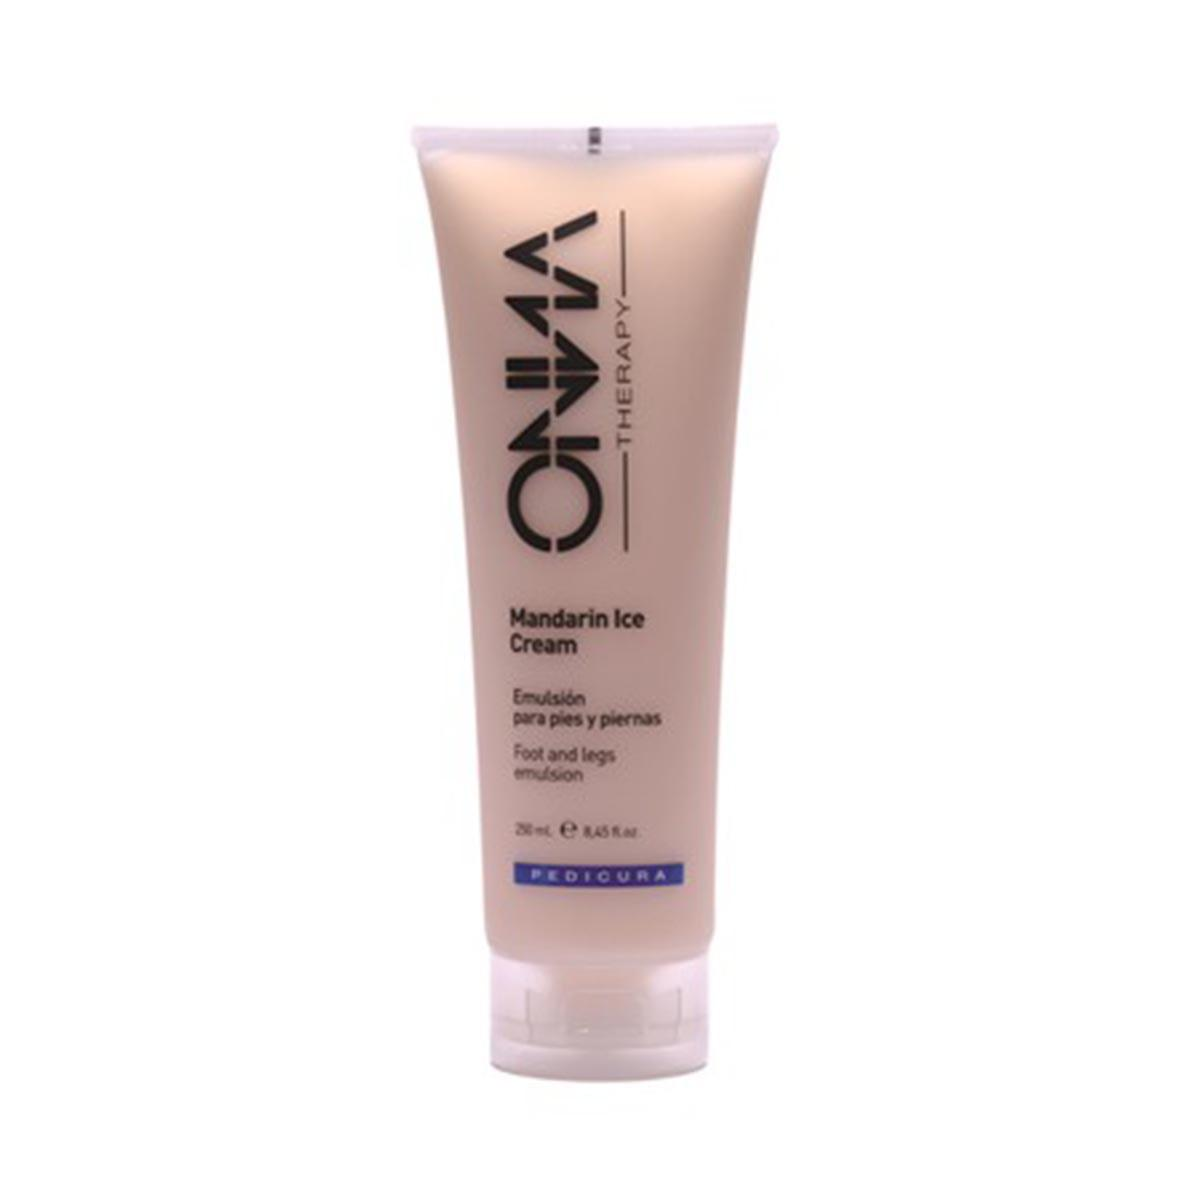 Onna therapy Mandarin Ice Cream Emulsion Feet And Legs 500 ml